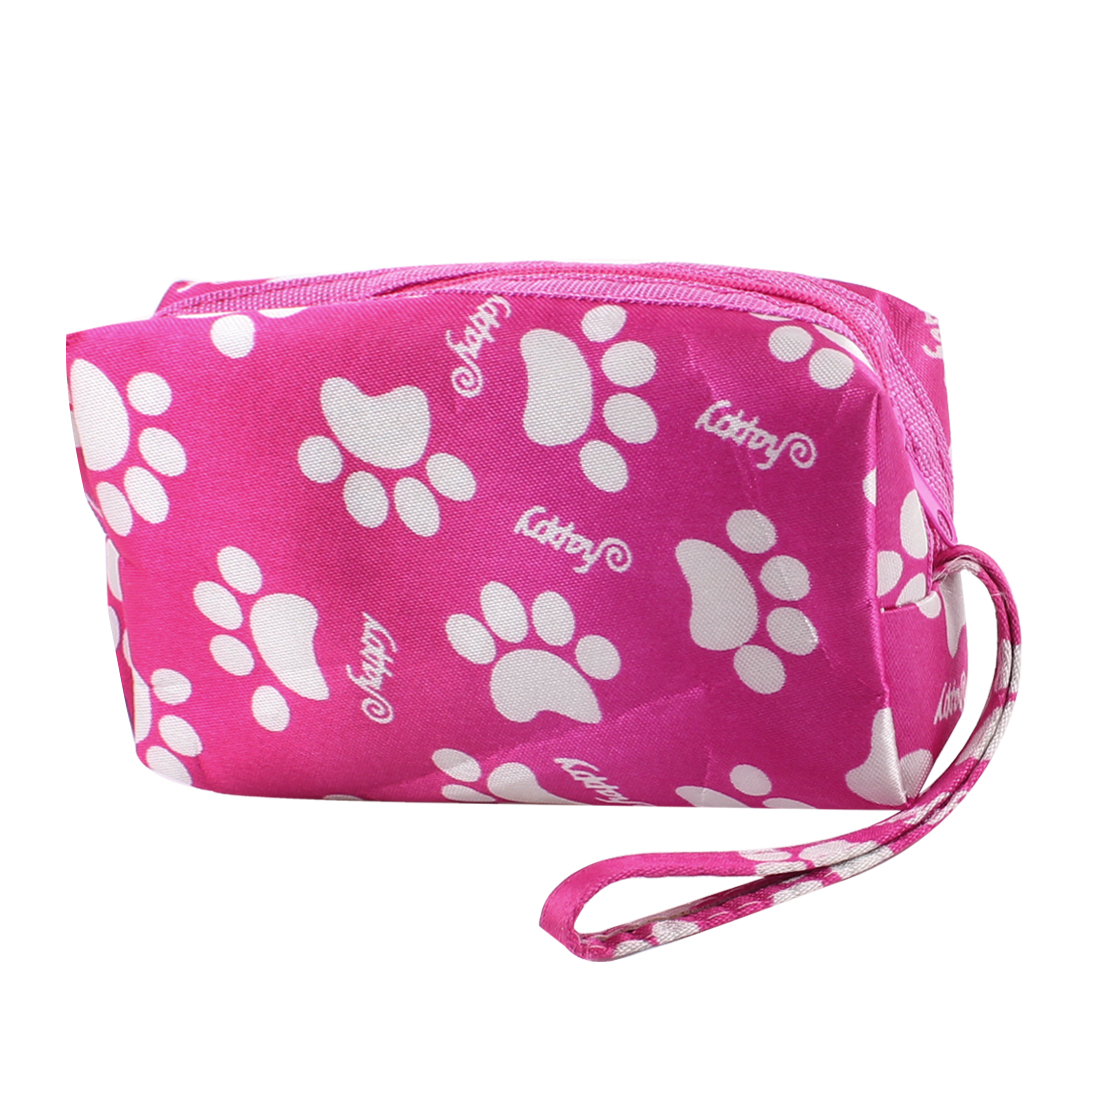 White Paw Letter Prints Zipper Closure Fuchsia Wallet Purse Bag for Lady